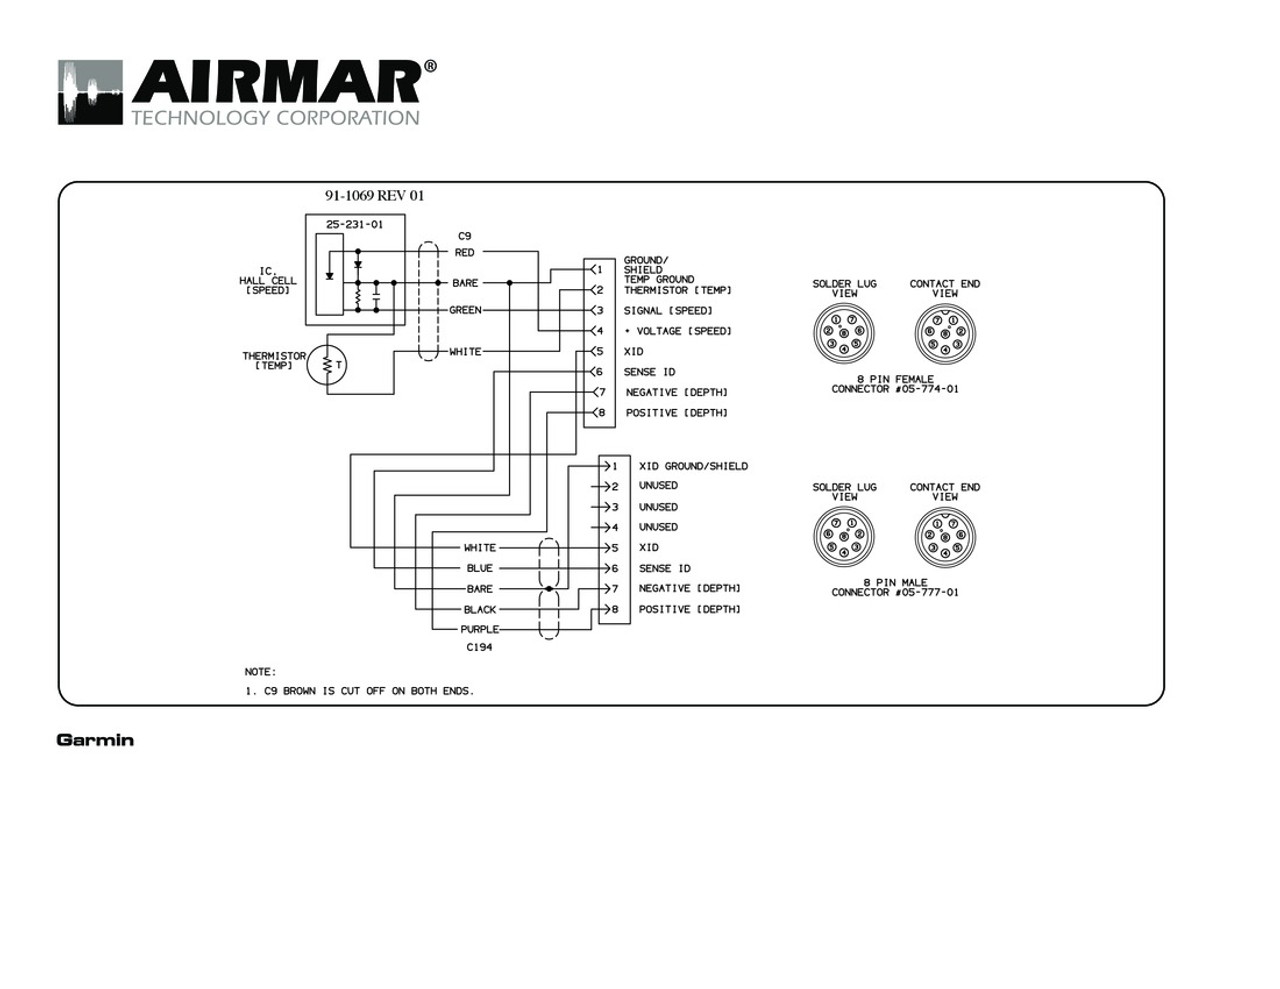 8 Pin Connector Wiring Diagram | Wiring Diagram